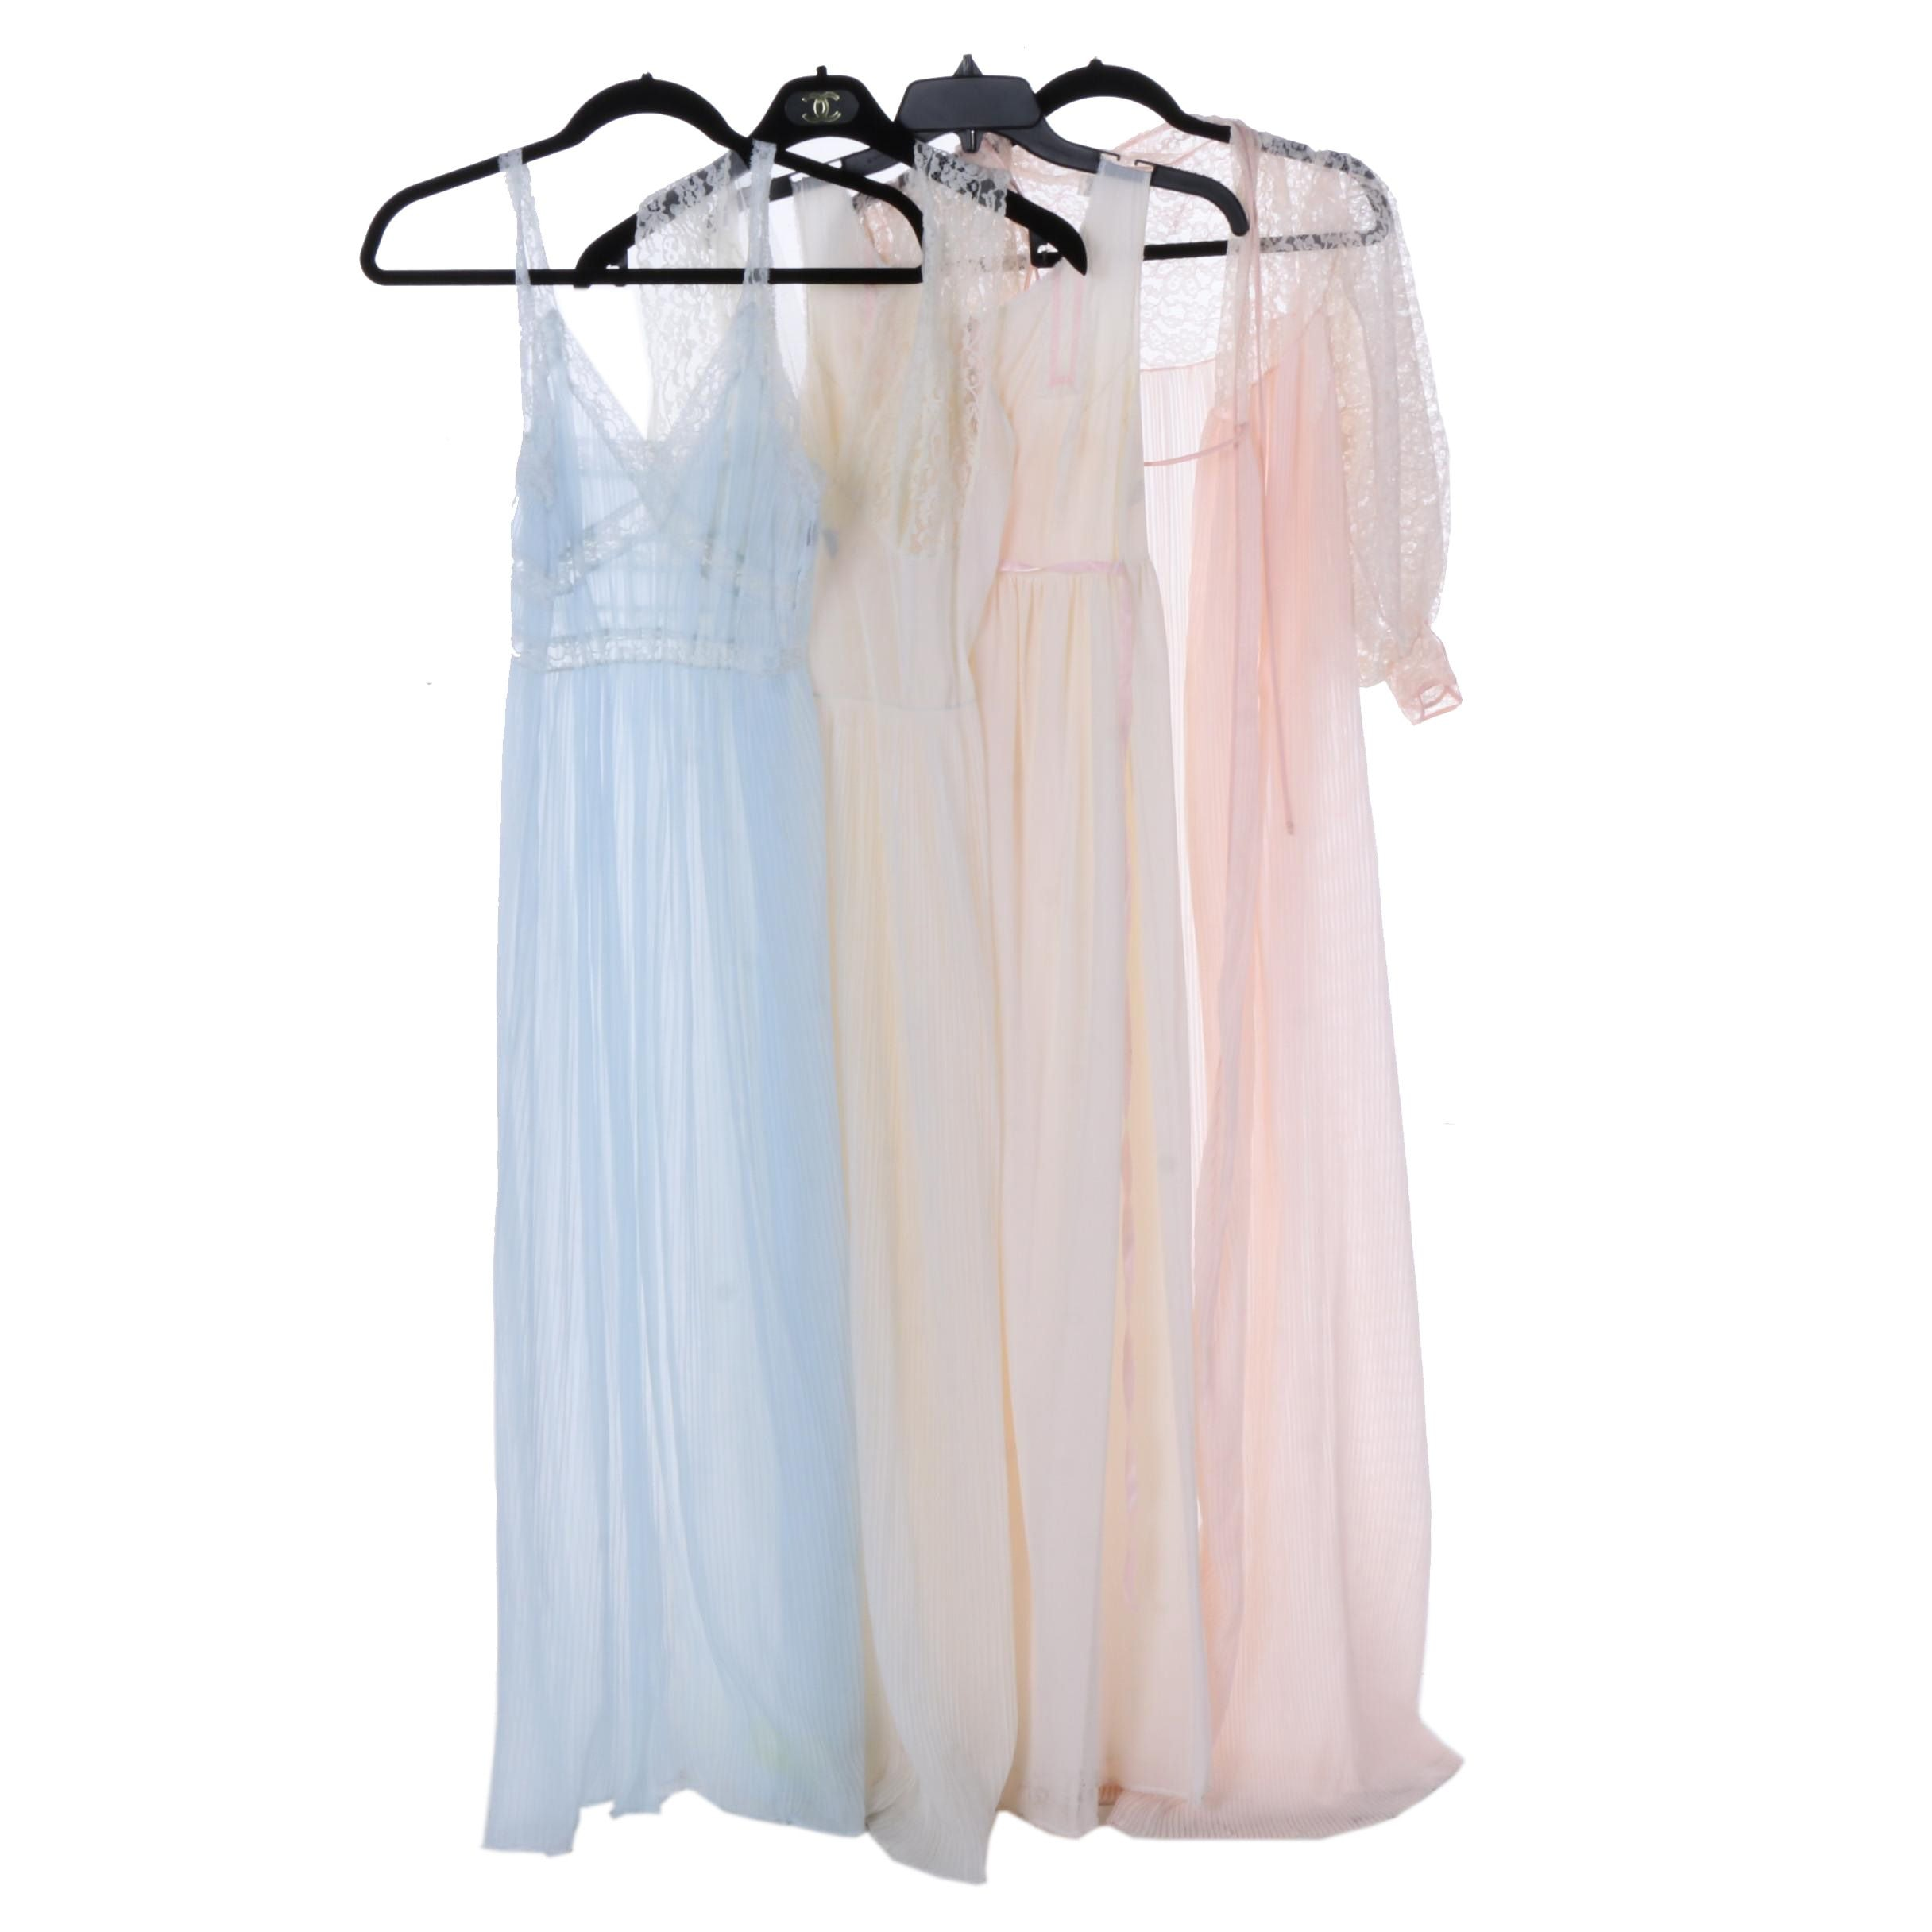 Women's Vintage Nightgowns